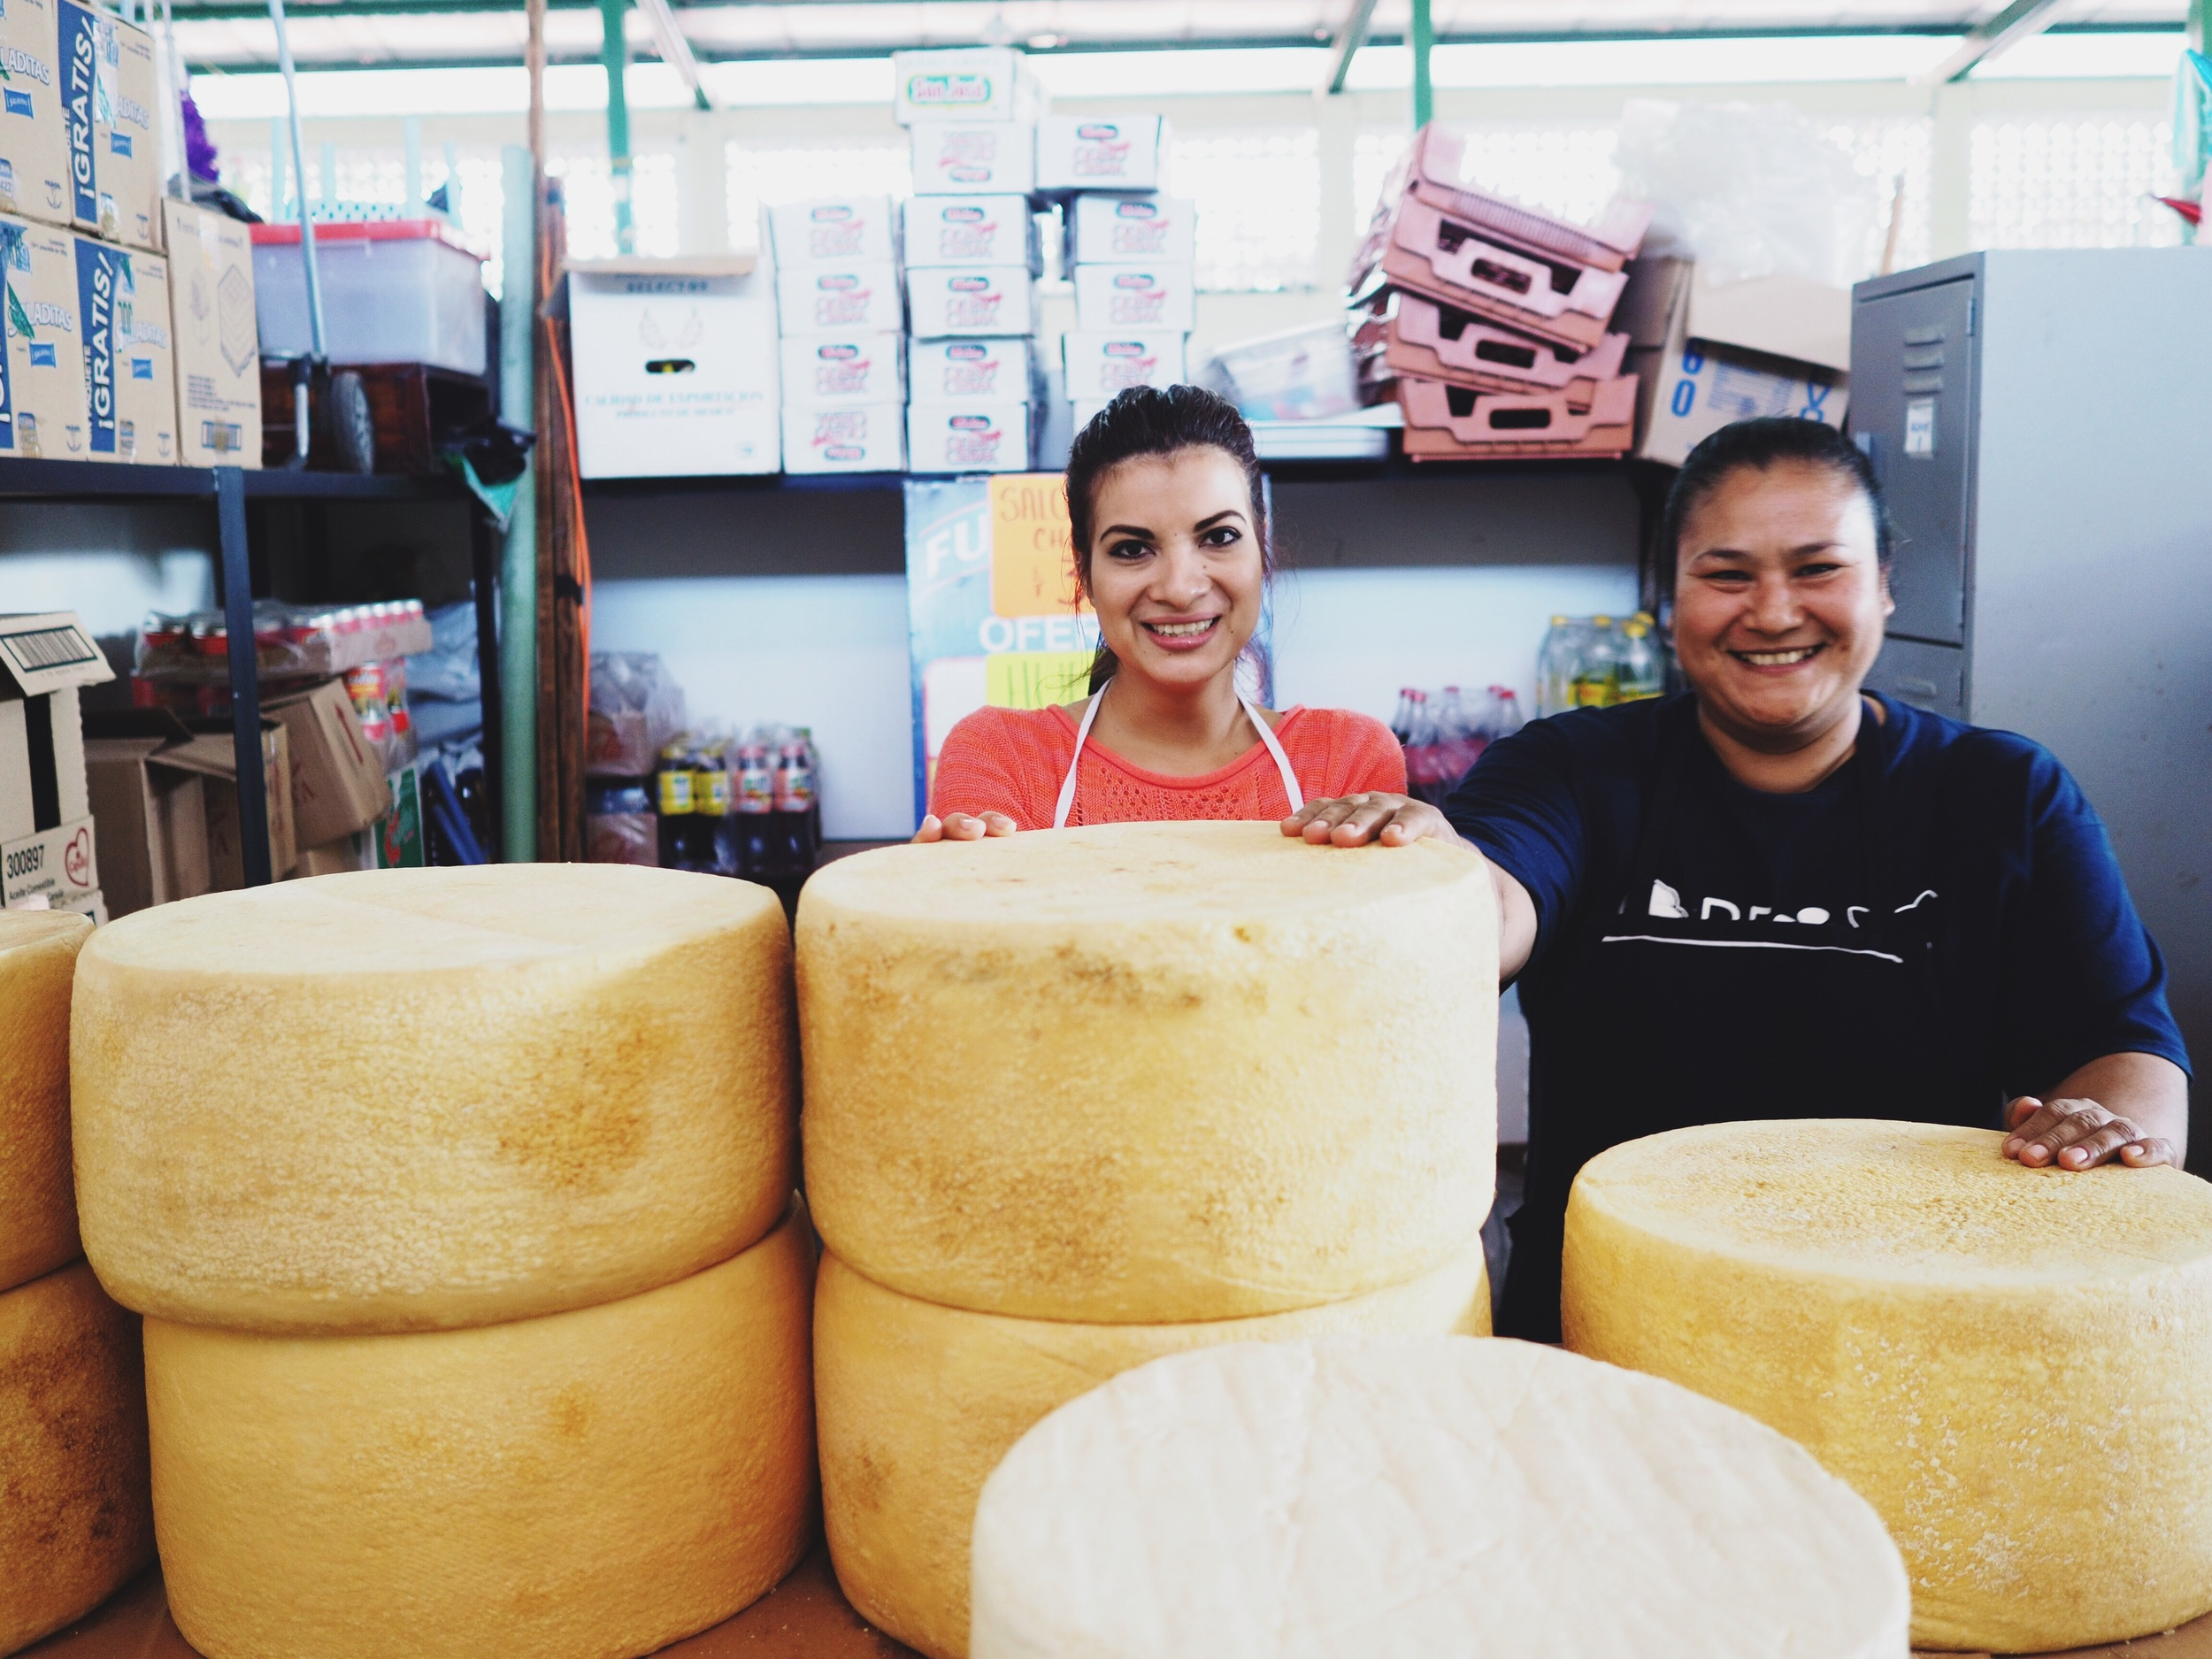 The wonderful ladies at the queso booth in the Colima Central Market